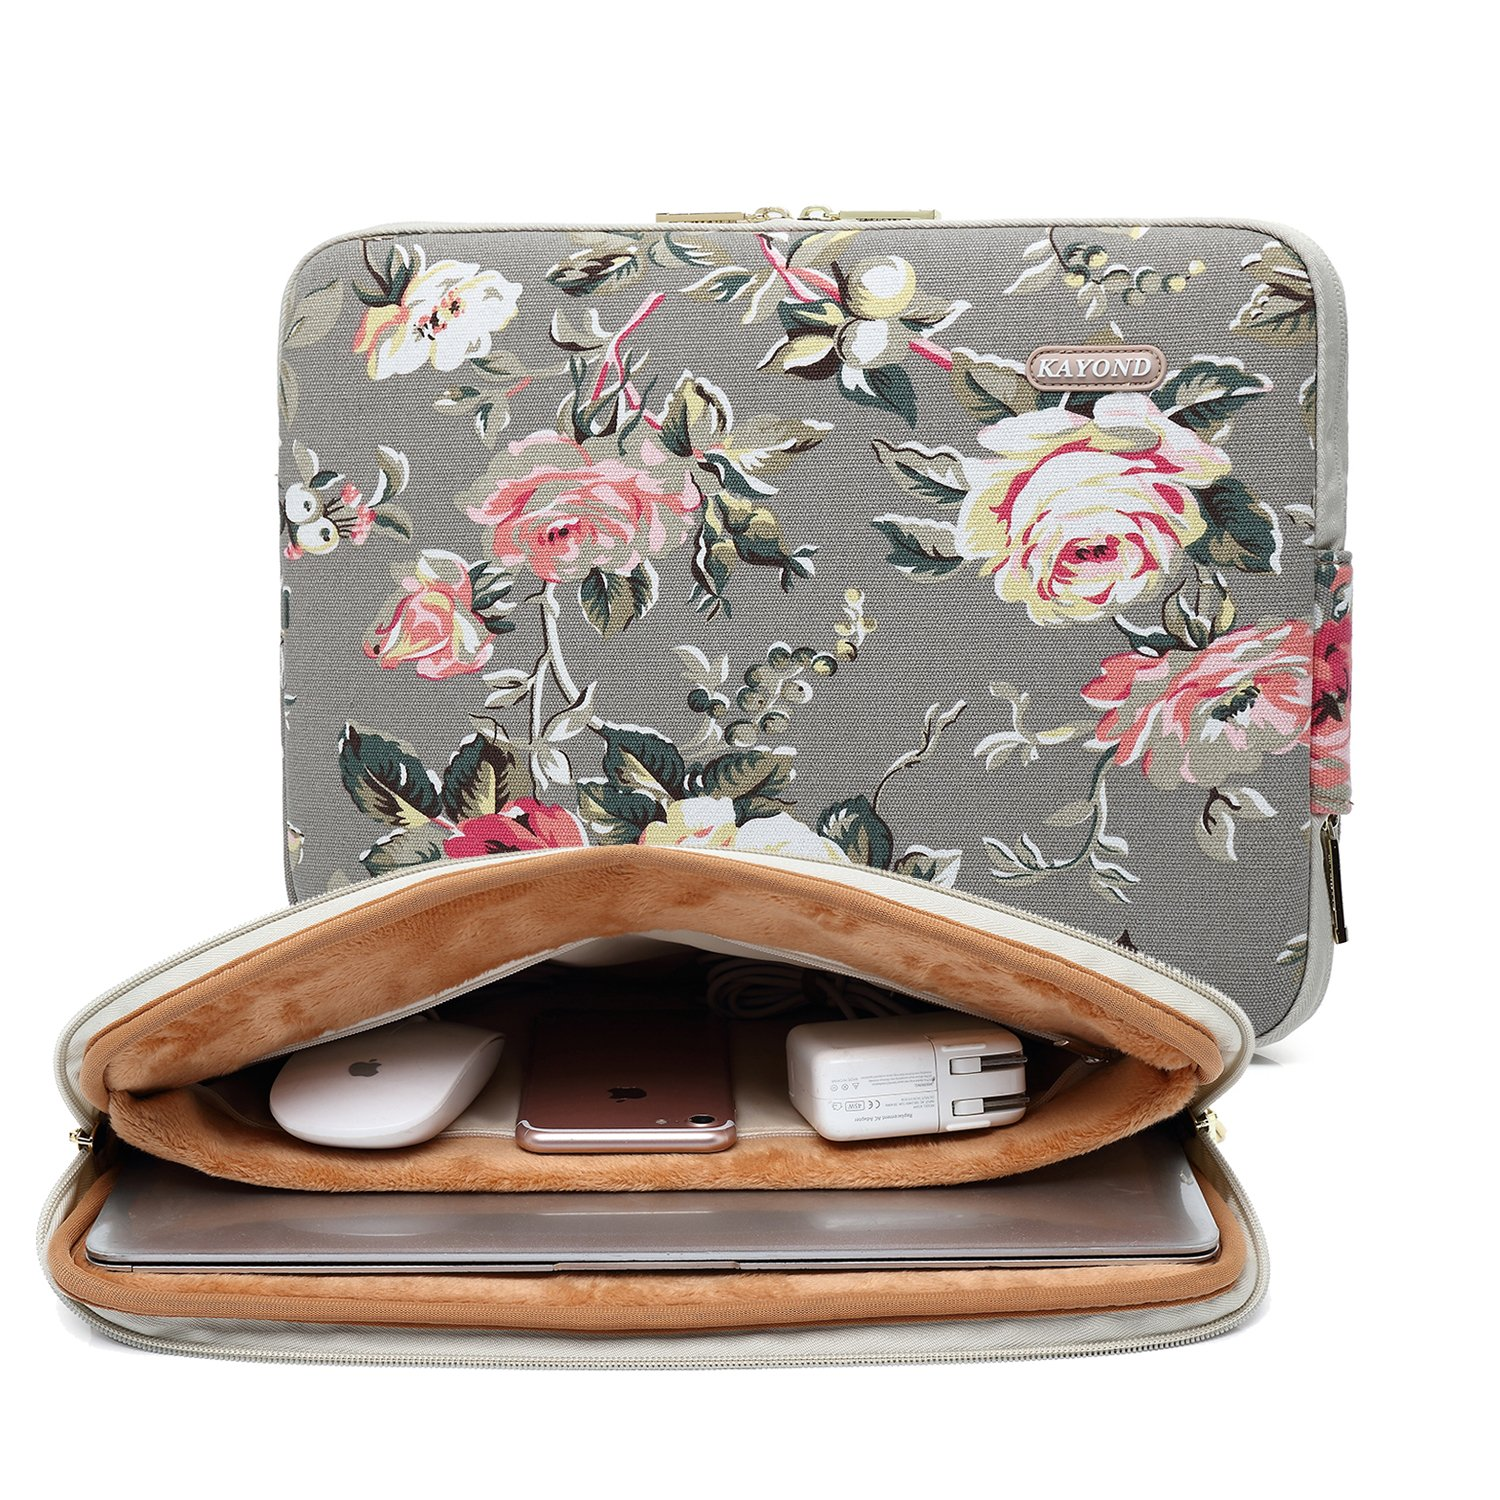 kayond Gery Rose Patten canvas Water-resistant 11.6 Inch Laptop Sleeve